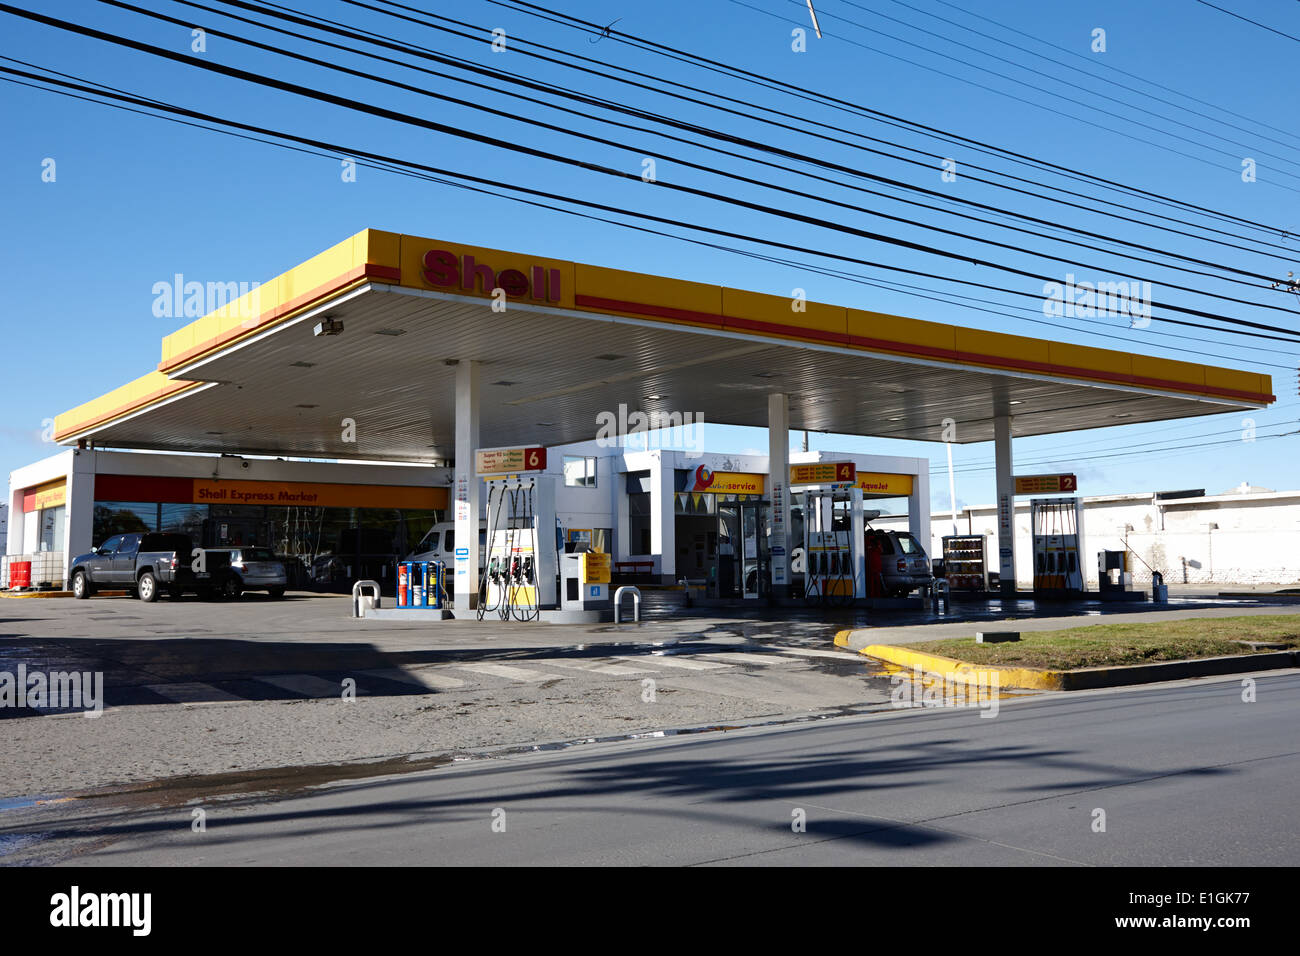 shell gas petrol service station punta arenas chile stock photo royalty free image 69822459. Black Bedroom Furniture Sets. Home Design Ideas